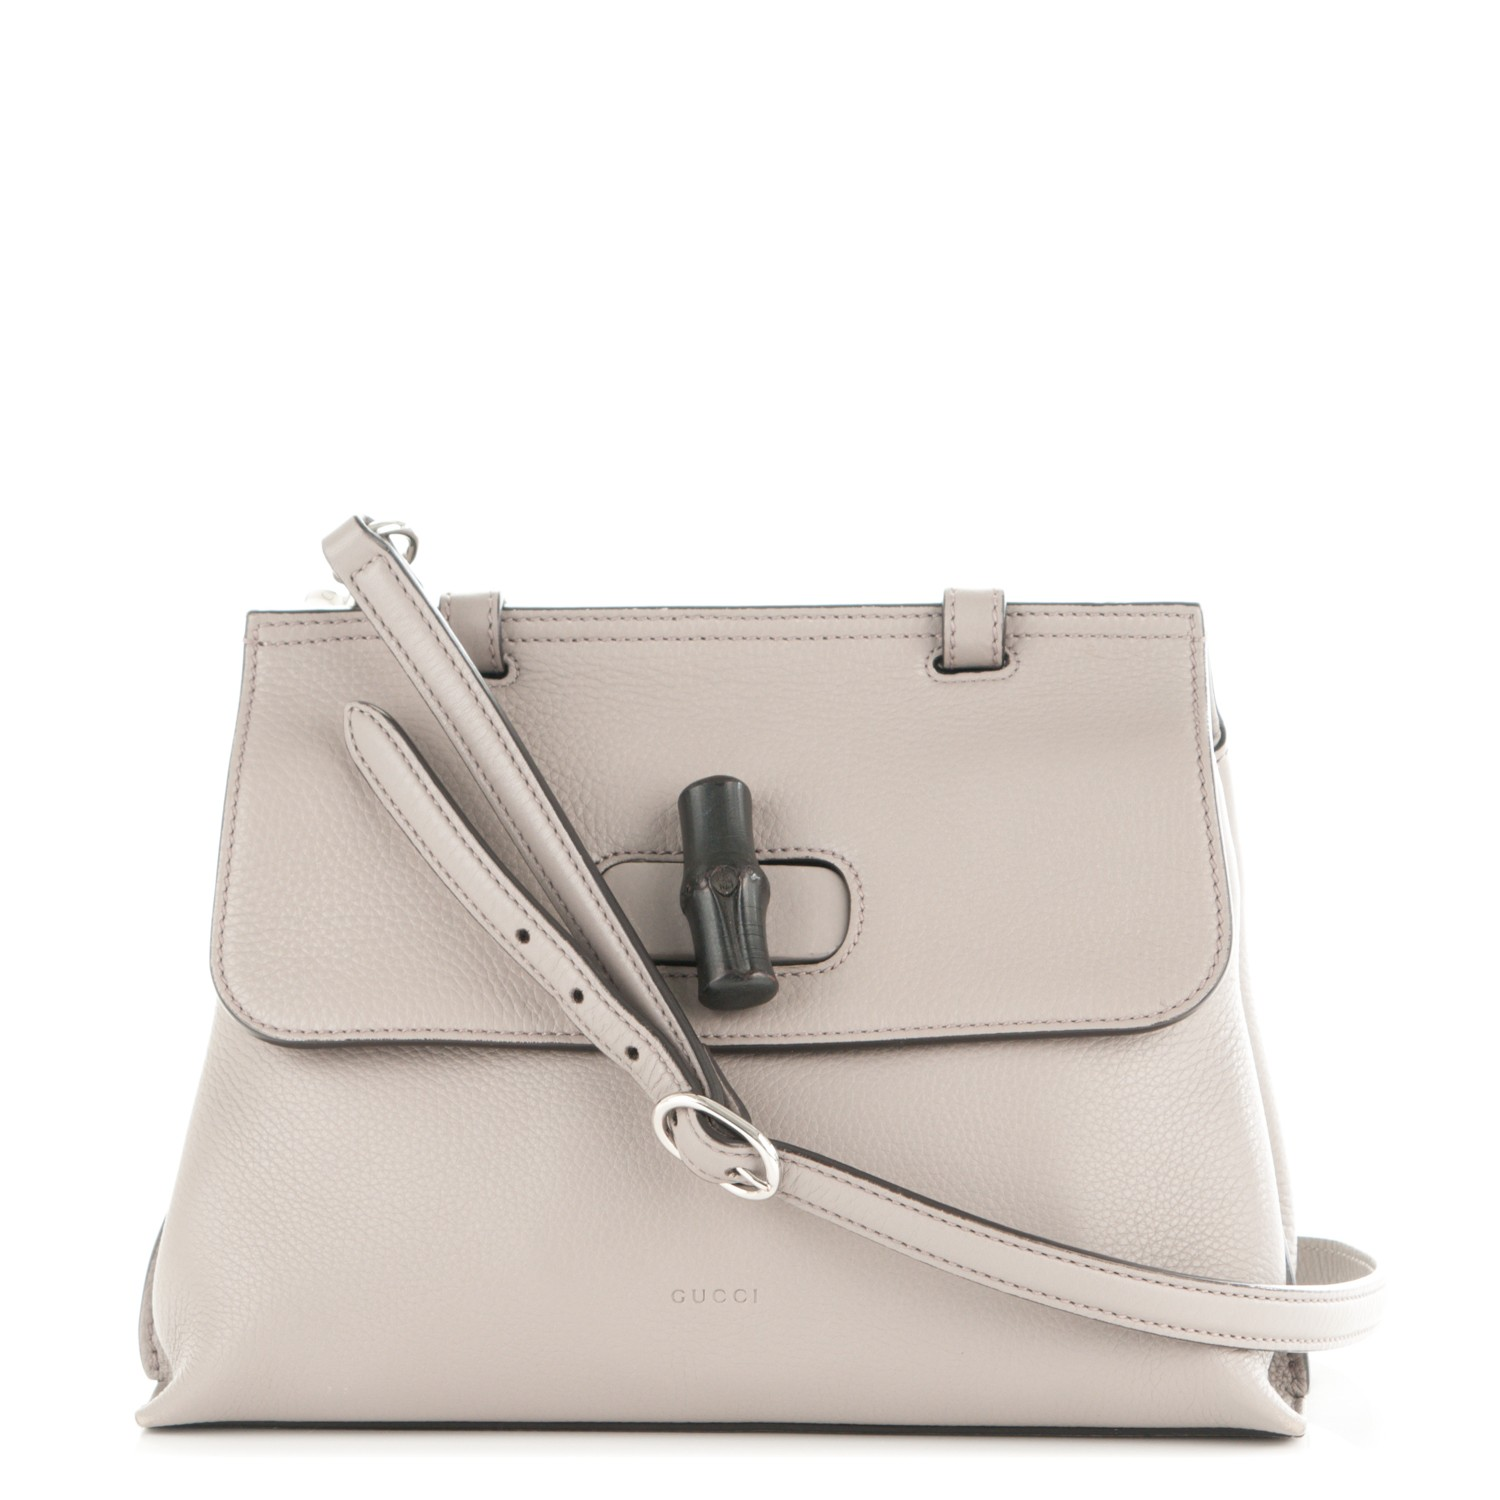 aa07dbf5e9733d GUCCI Pebbled Calfskin Small Bamboo Daily Top Handle Bag Light Grey 177297